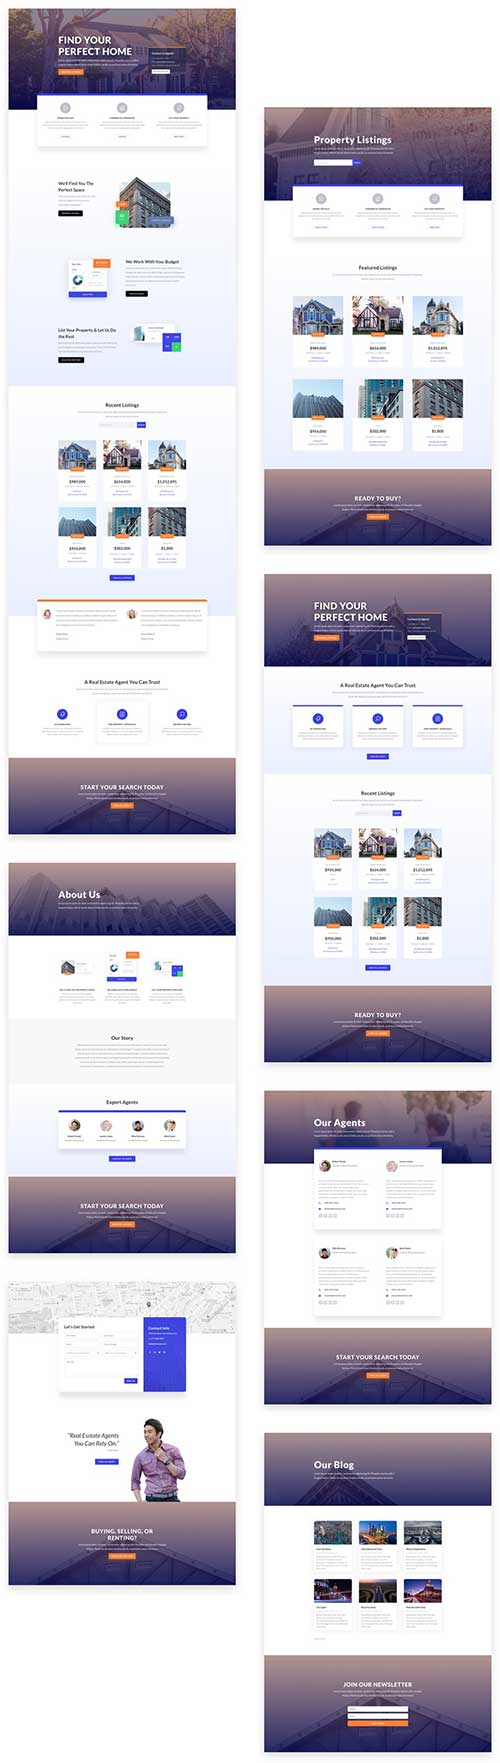 free divi layout pack for real estate